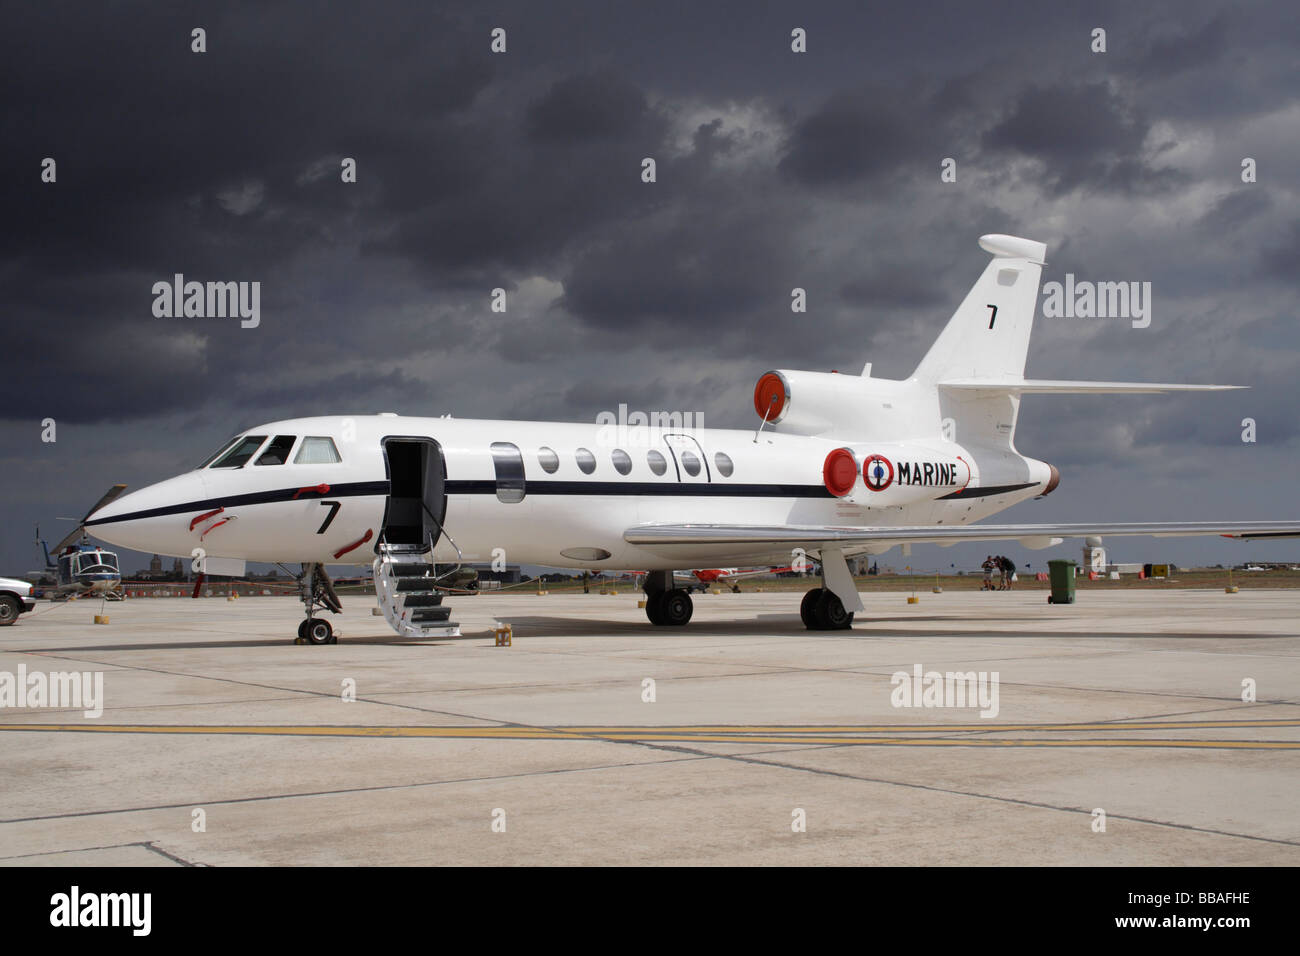 Dassault Falcon 50M maritime surveillance jet of the French Navy - Stock Image